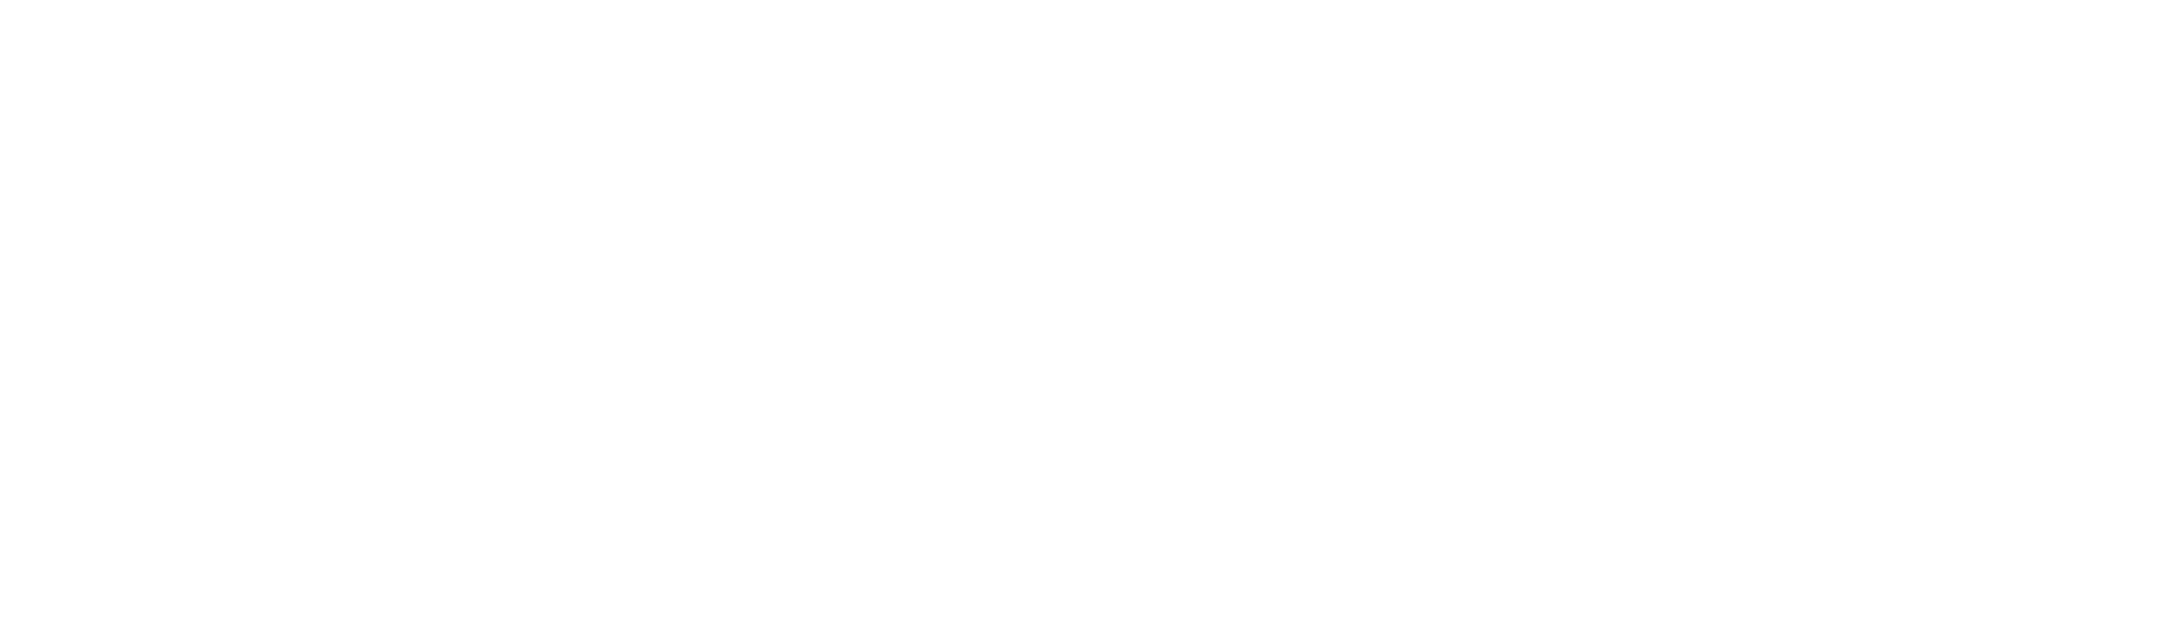 Bemiss Road Baptist Church